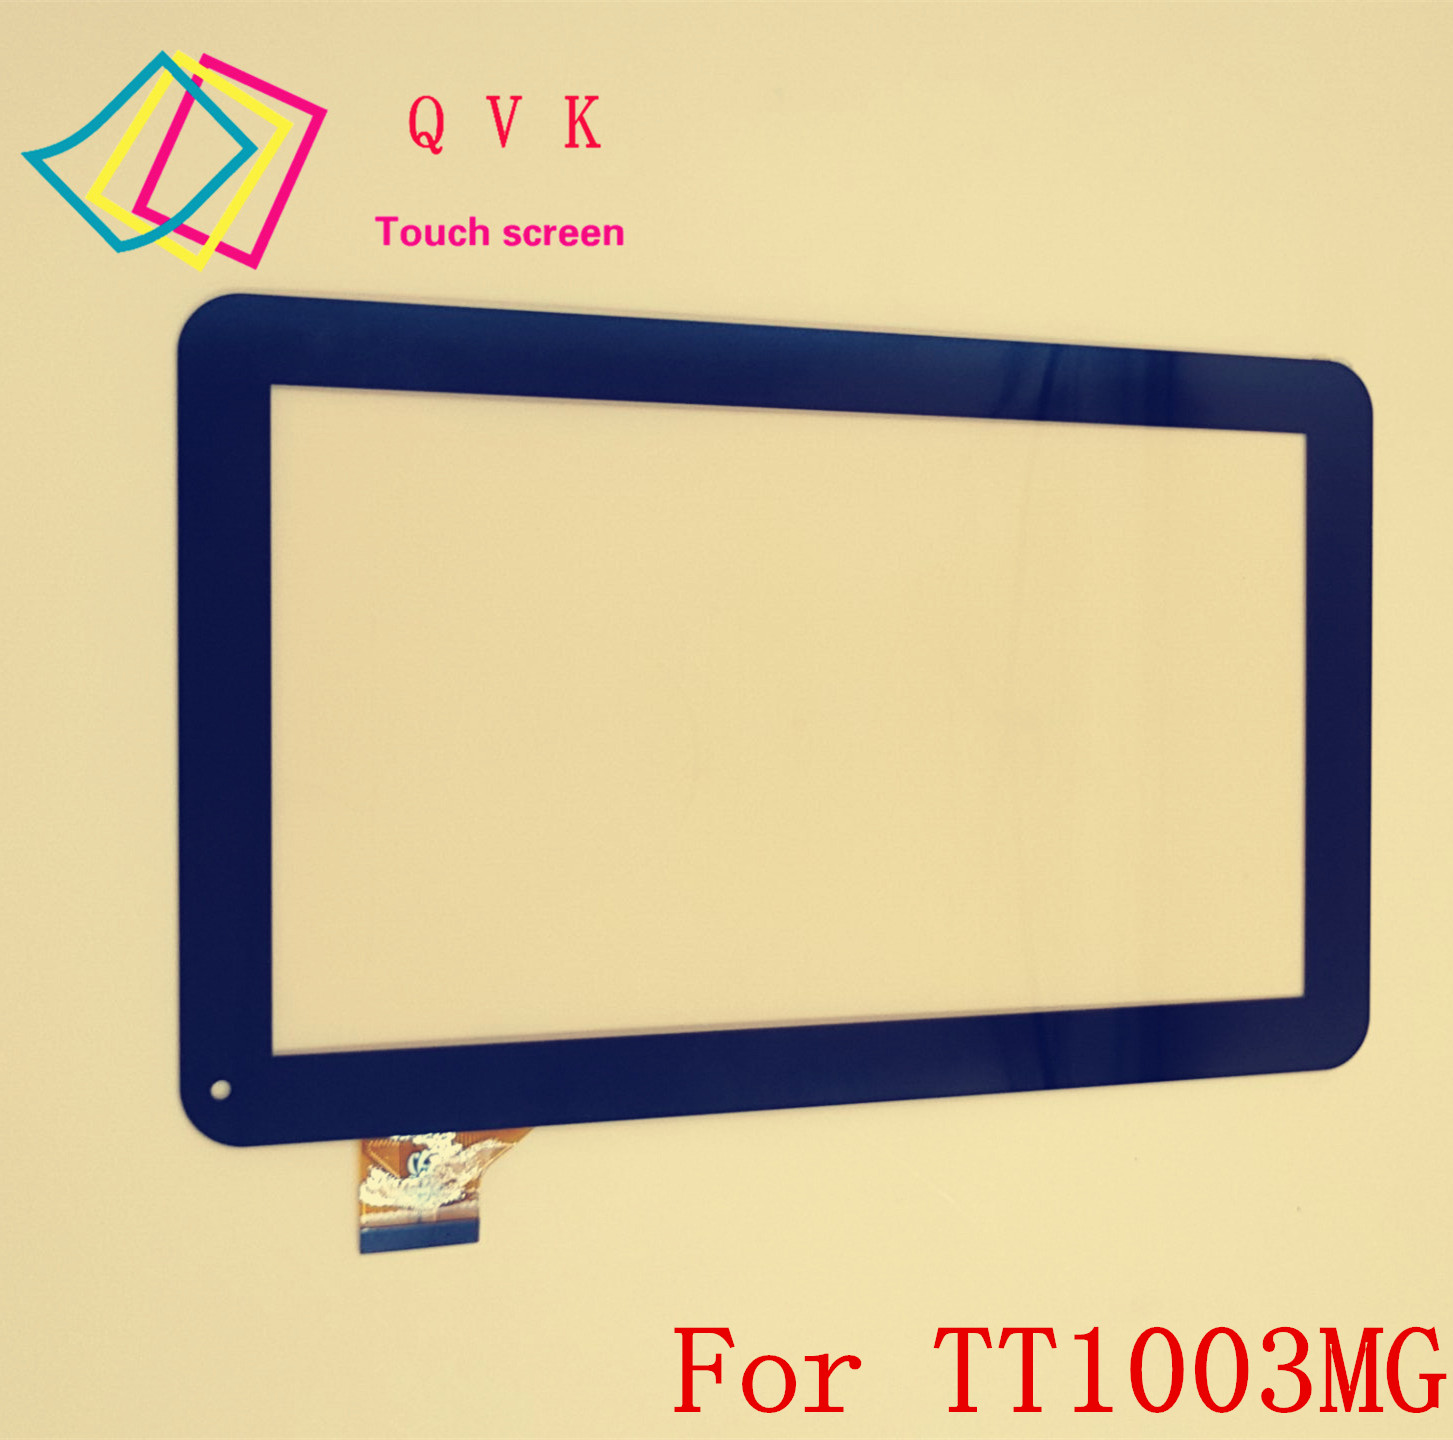 Black 10.1inch For Digma Optima 10.3 3G TT1003MG Tablet PC Touch screen panel Digitizer Glass Sensor replacement Free Shipping планшет digma plane 1601 3g ps1060mg black